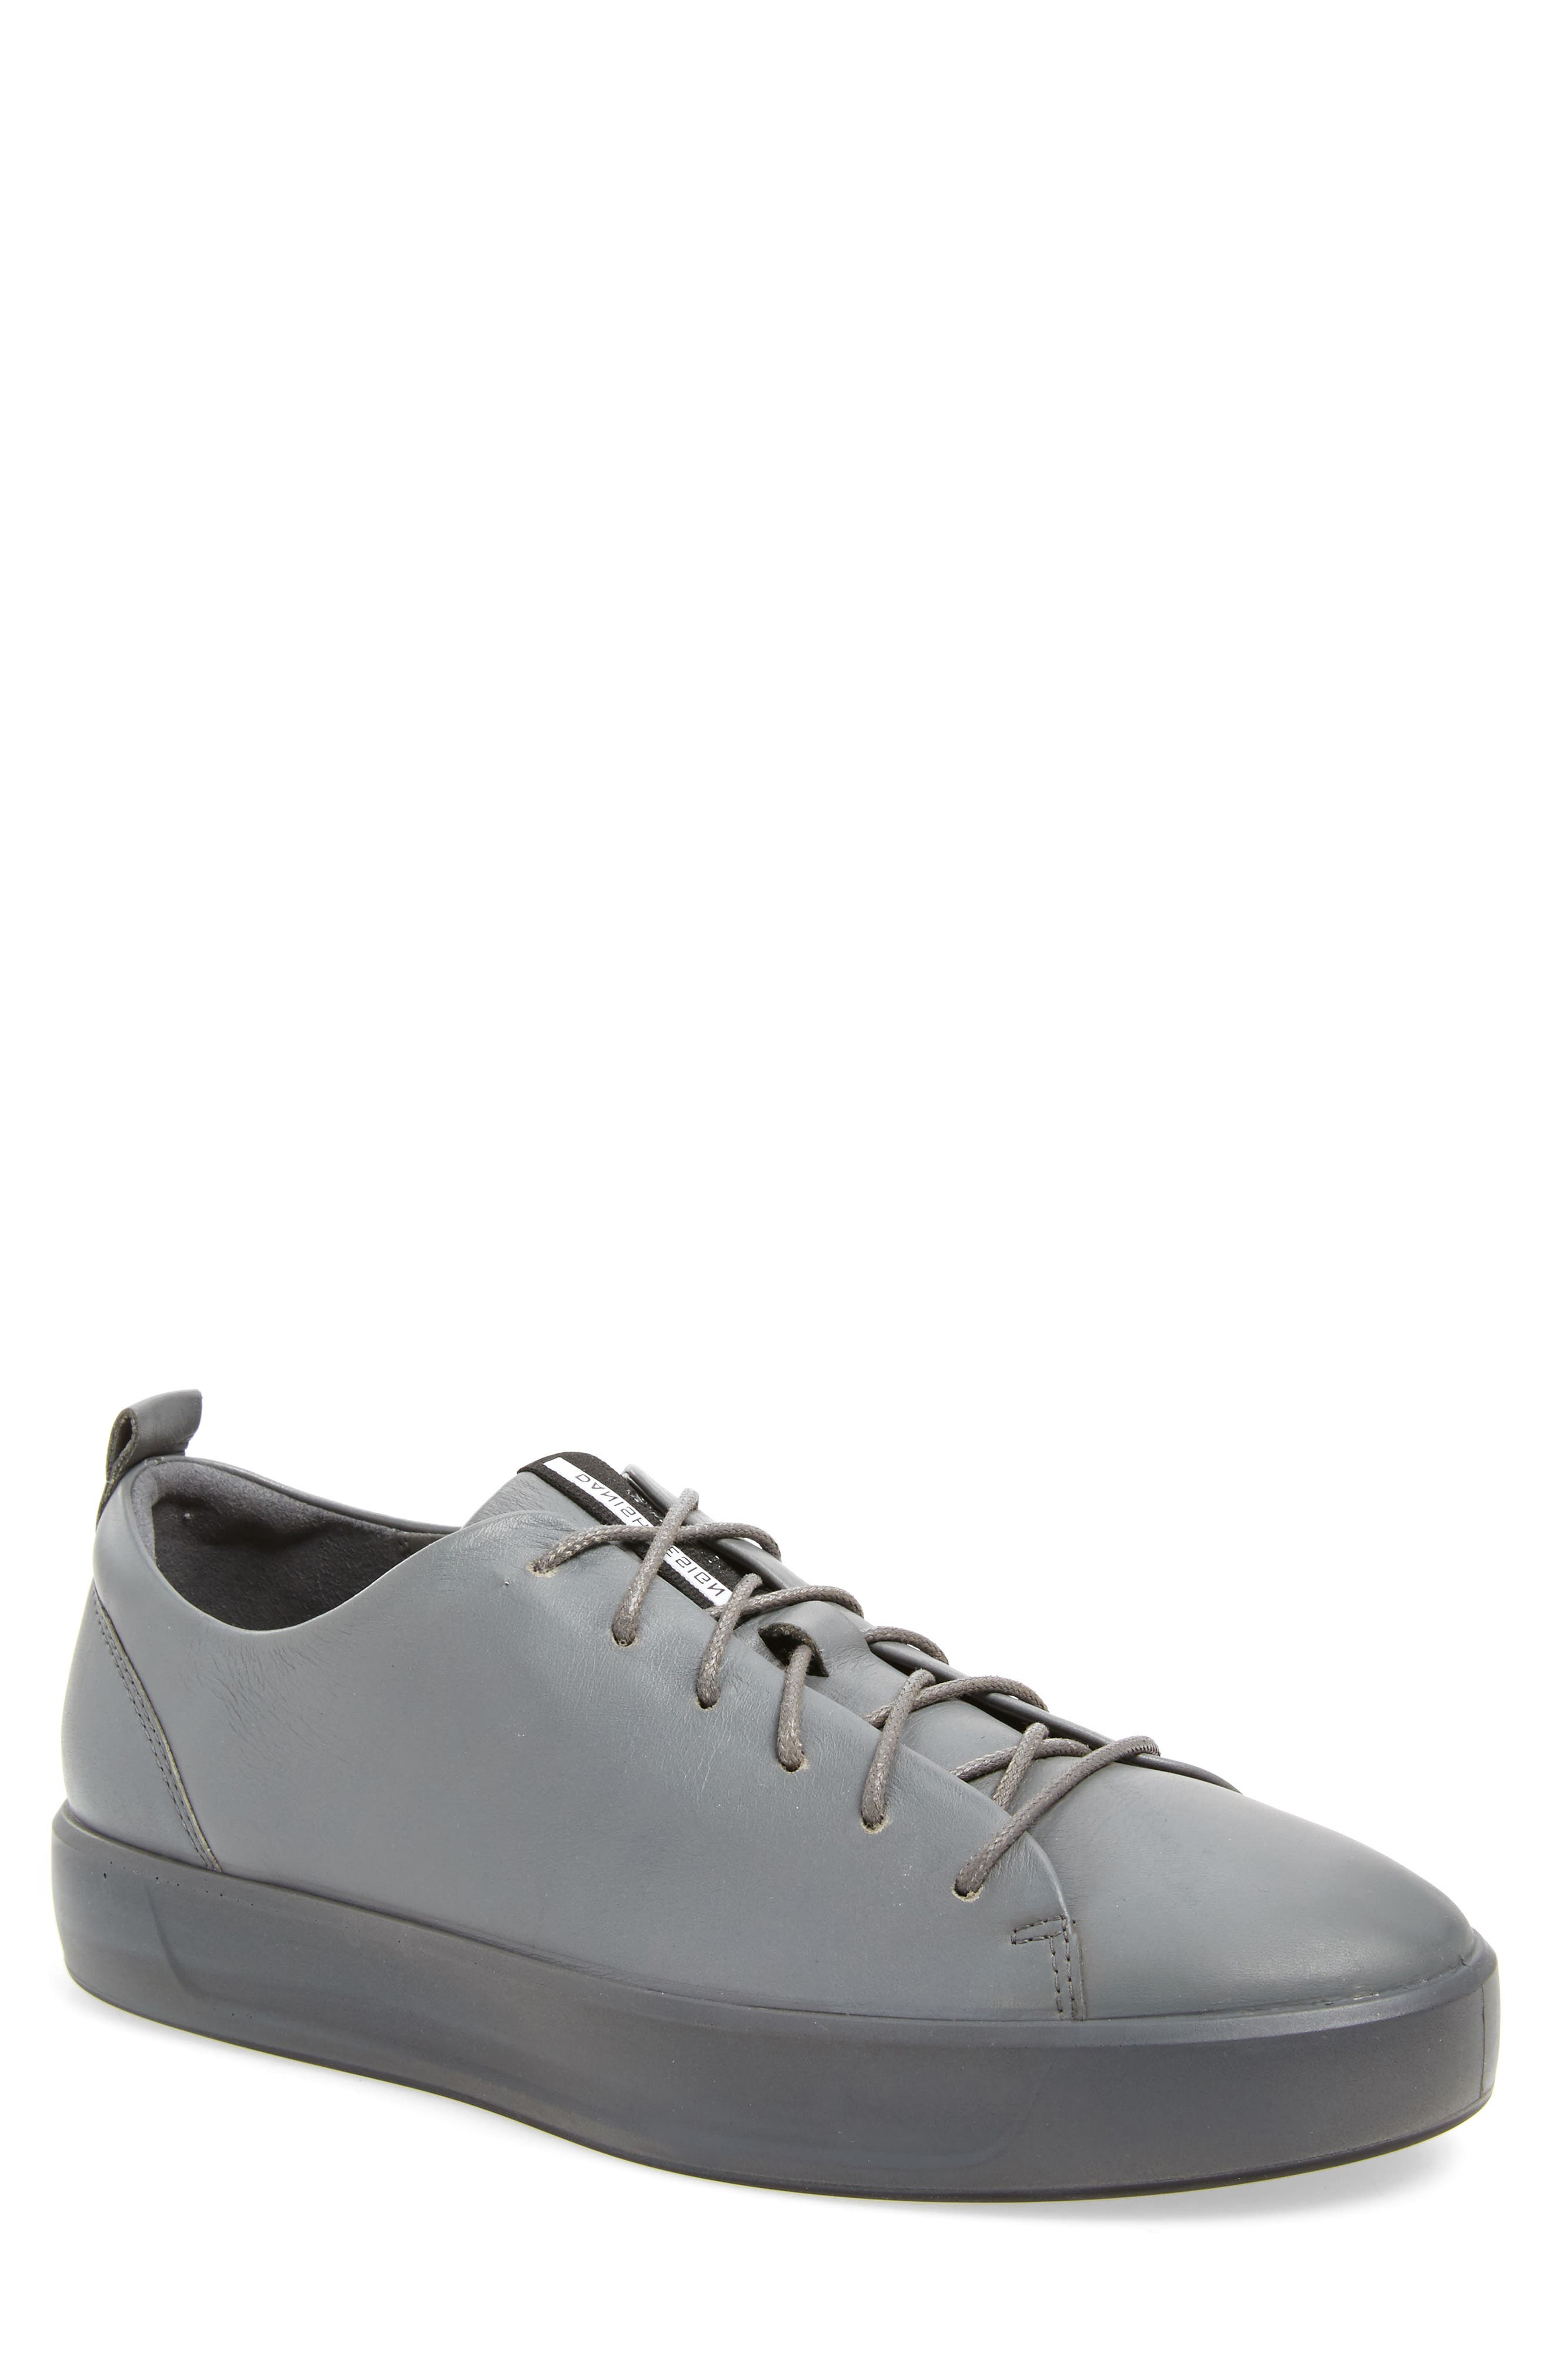 Soft 8 Sneaker,                             Main thumbnail 1, color,                             TITANIUM LEATHER